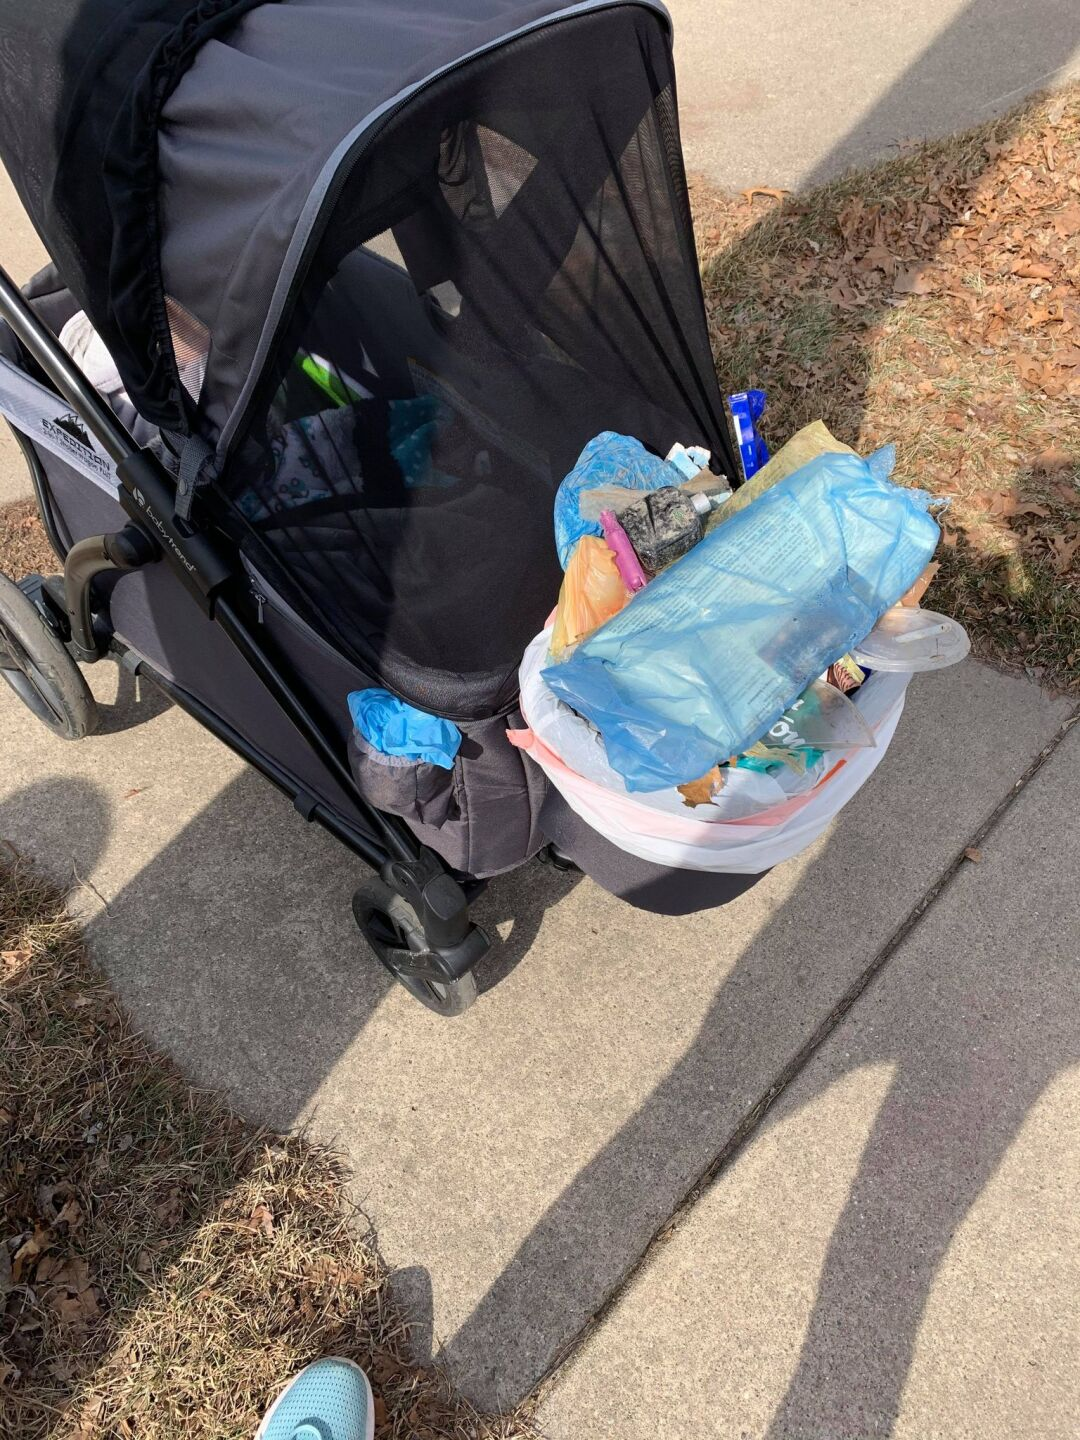 Local mom sets up community group to help clean up trash 'one bag at a time'